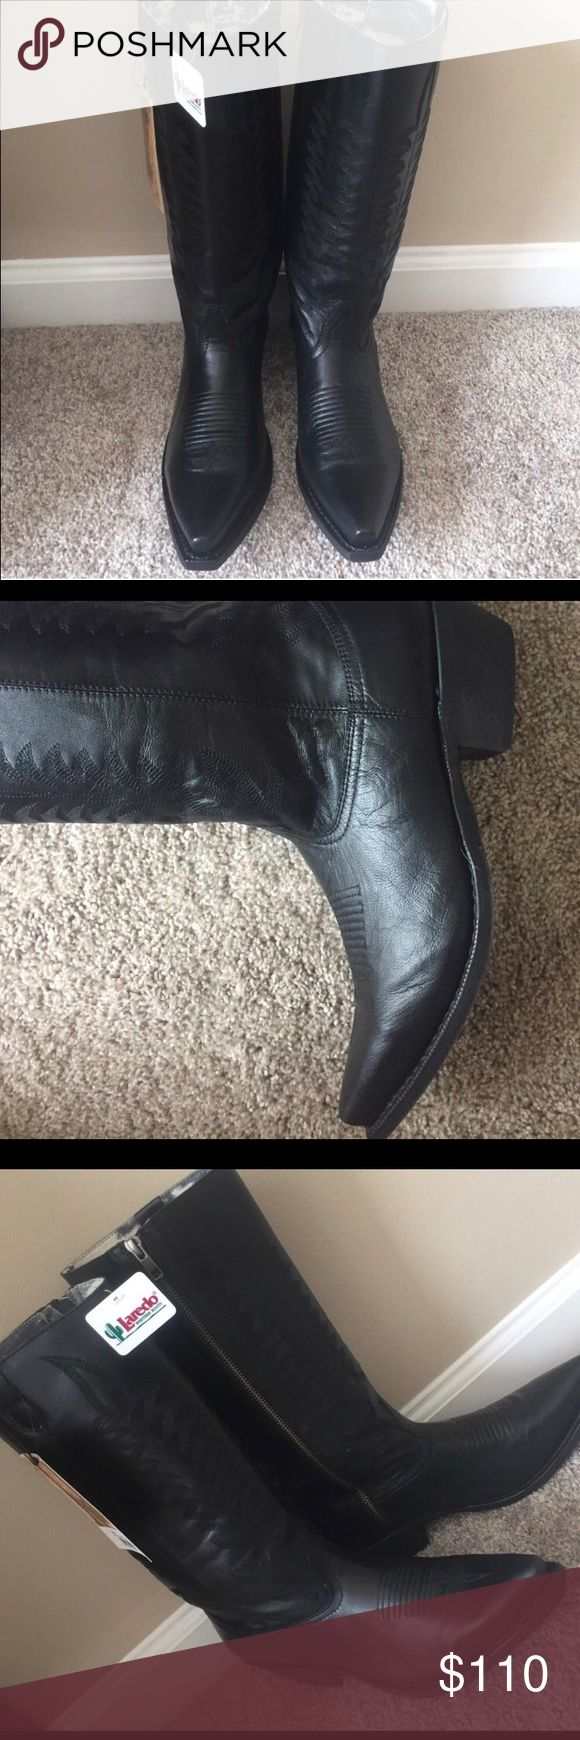 Laredo women's black cowboy boot with zipper 8.5 Brand new with tags- I only tried these on in the house.  Black leather with inside zipper and super soft lining. A little too wide for me. Laredo Shoes